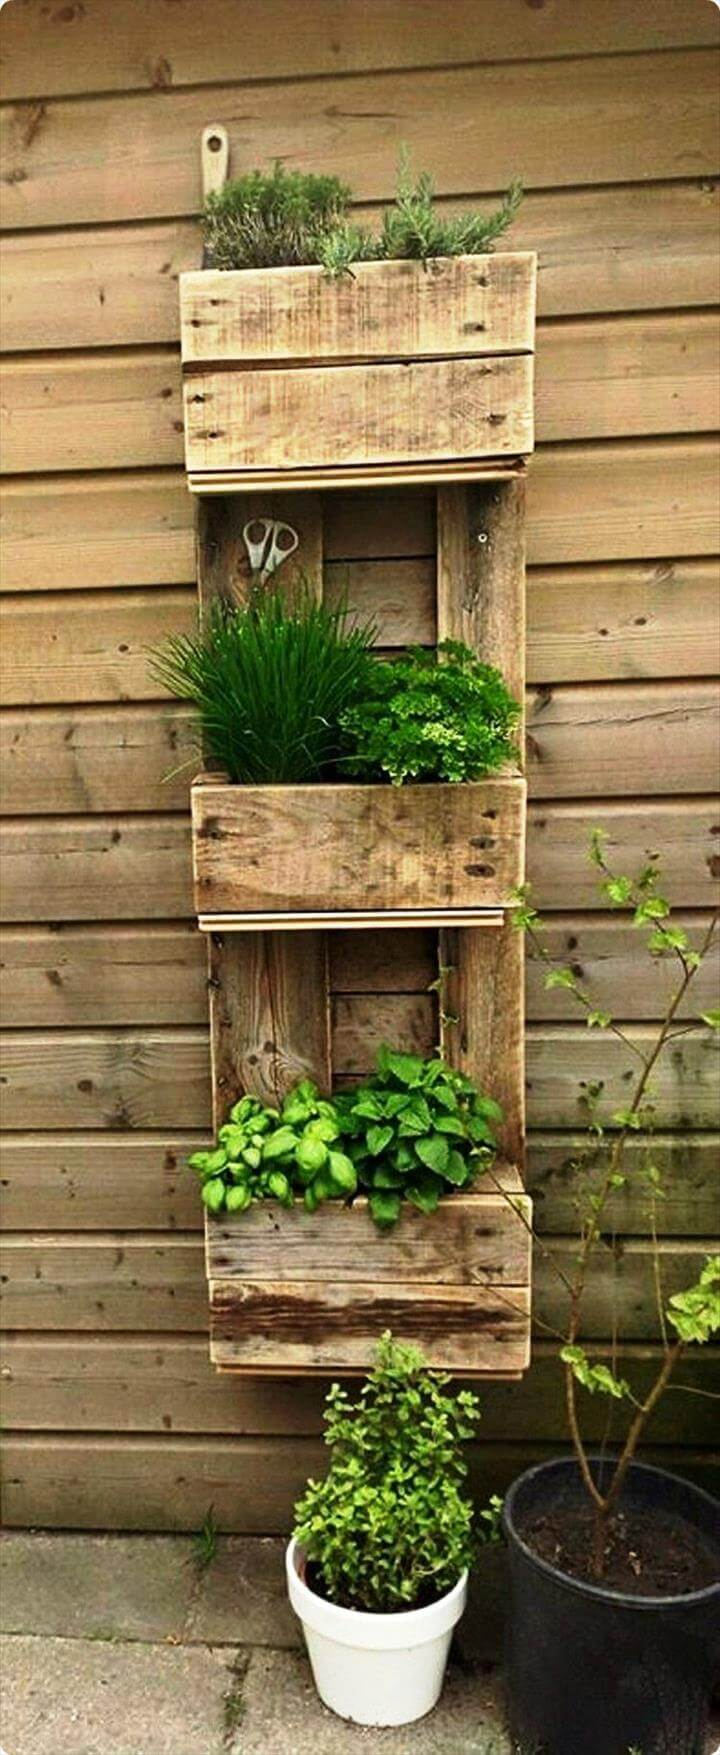 ... boost the visual of garden and also to give a natural touch to wall